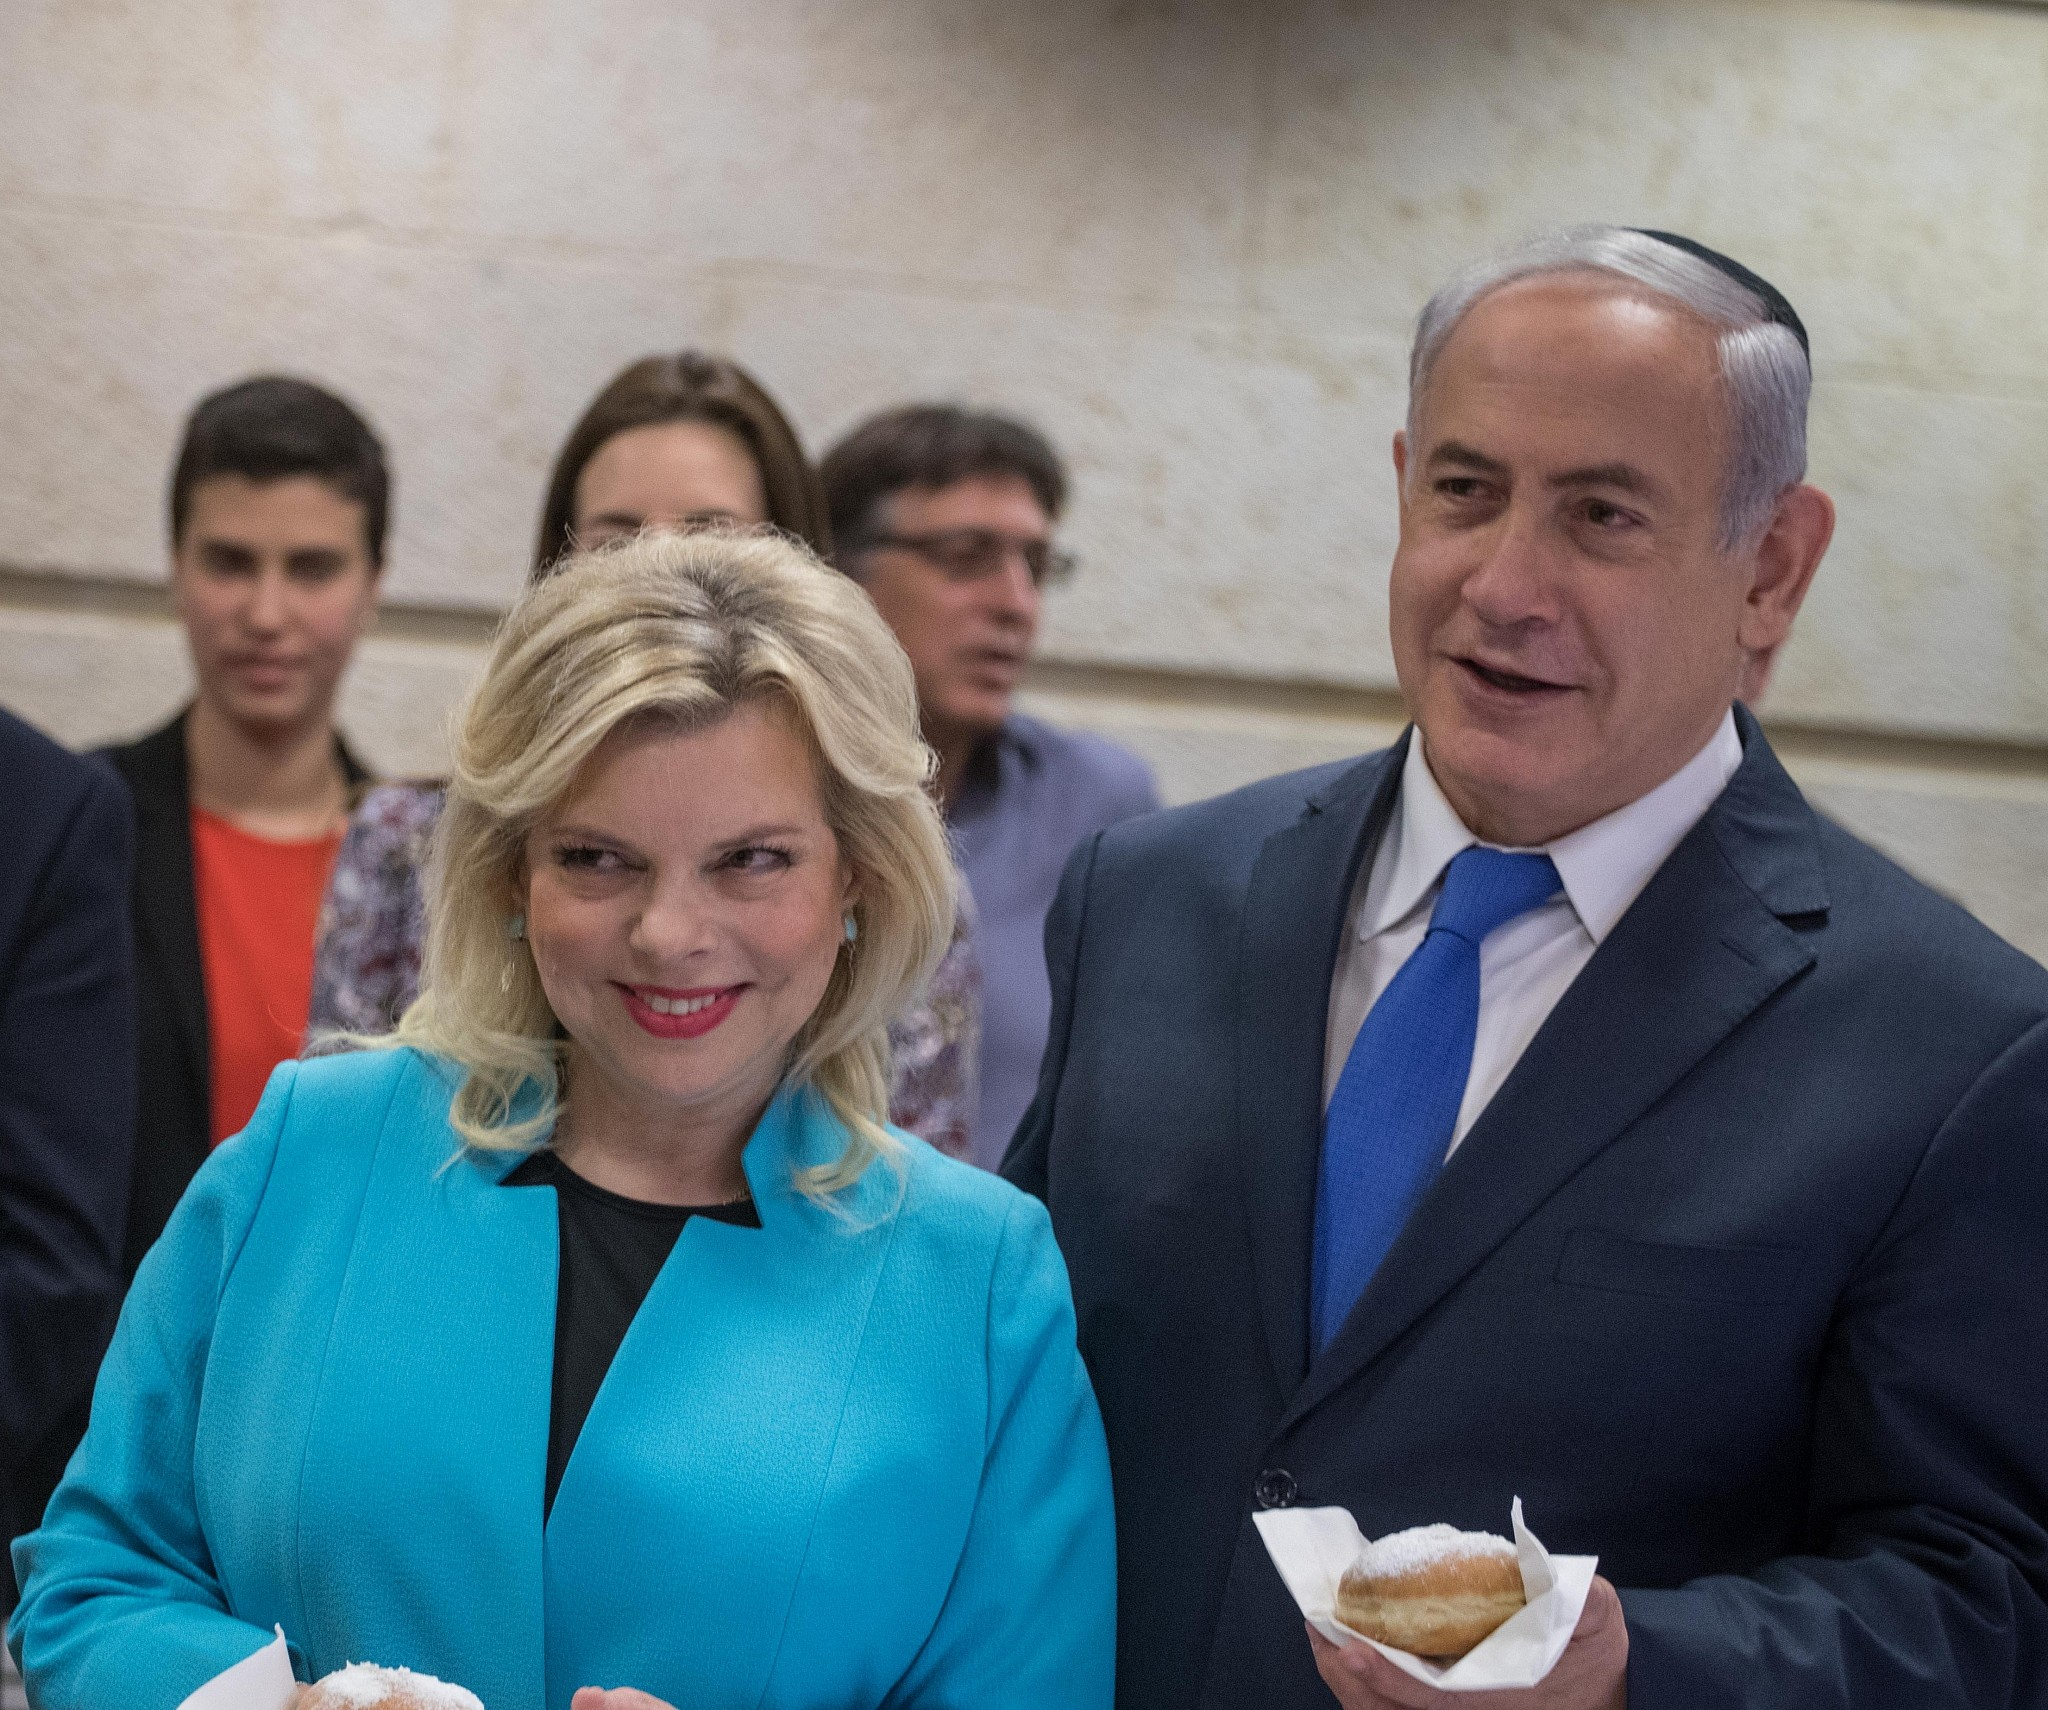 Prime Minister Benjamin Netanyahu his wife Sara take part in a menorah lighting ceremony on the first candle night of the Jewish holiday of Hanukkah at the Foreign Ministry in Jerusalem